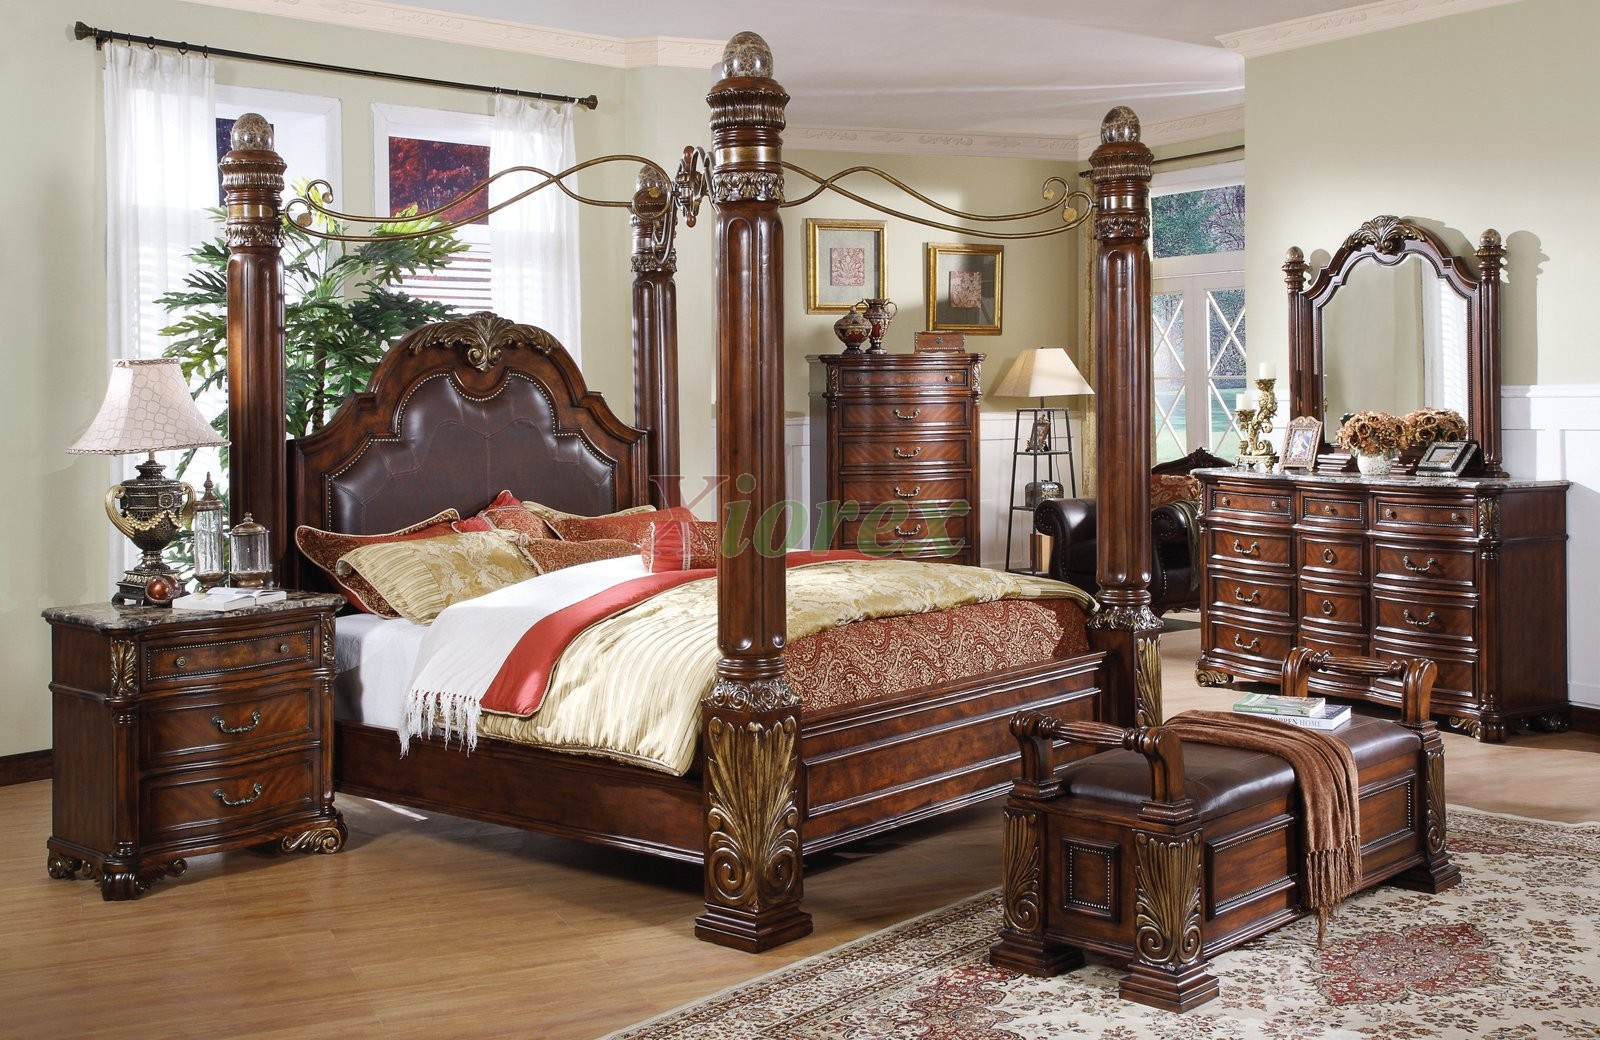 Poster Bedroom Set W Metal Canopy Leather Headboard Queen And King Beds